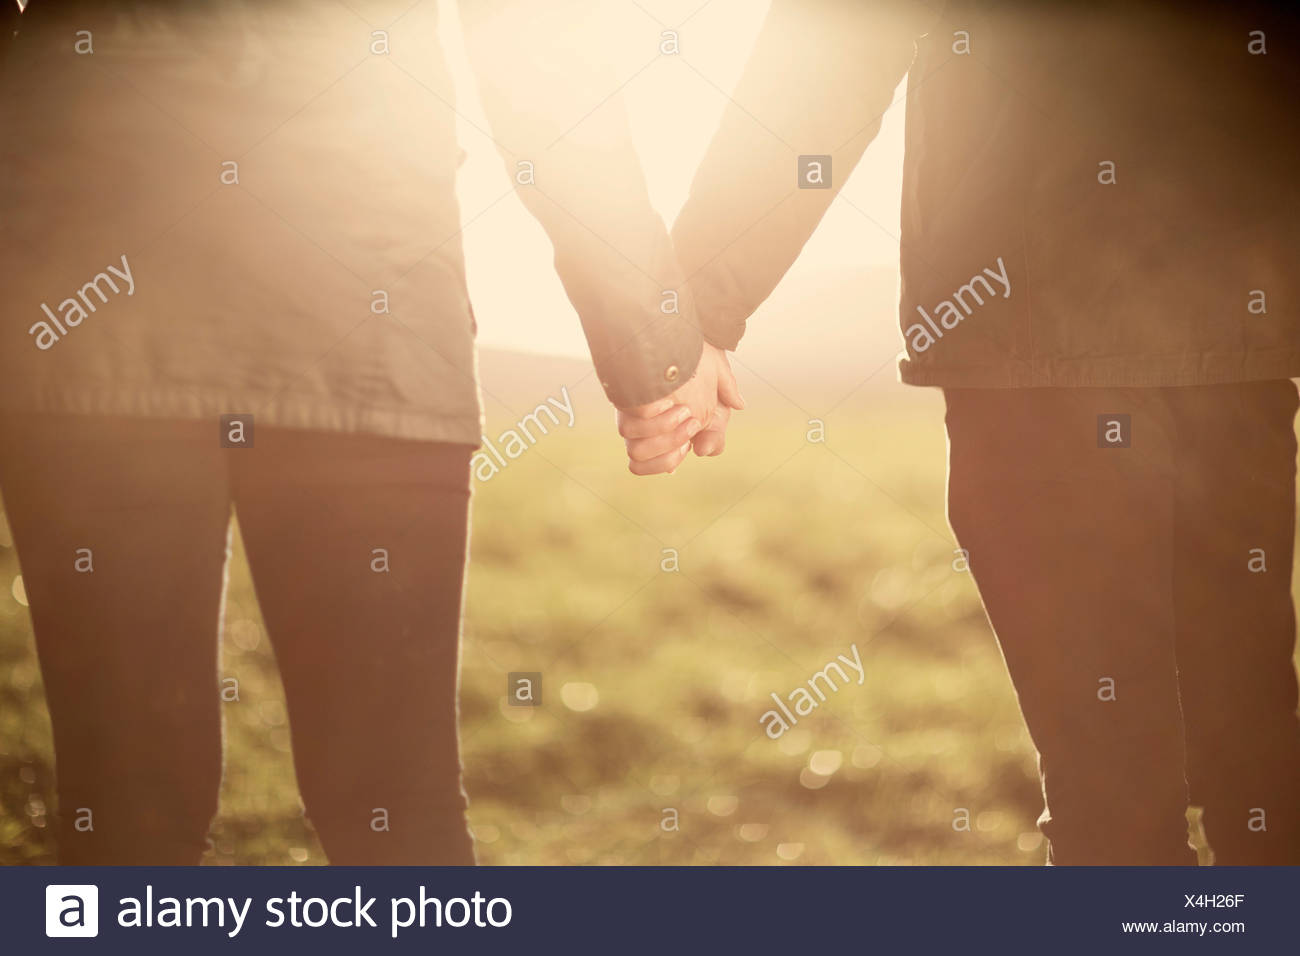 Mid section of couple, holding hands - Stock Image